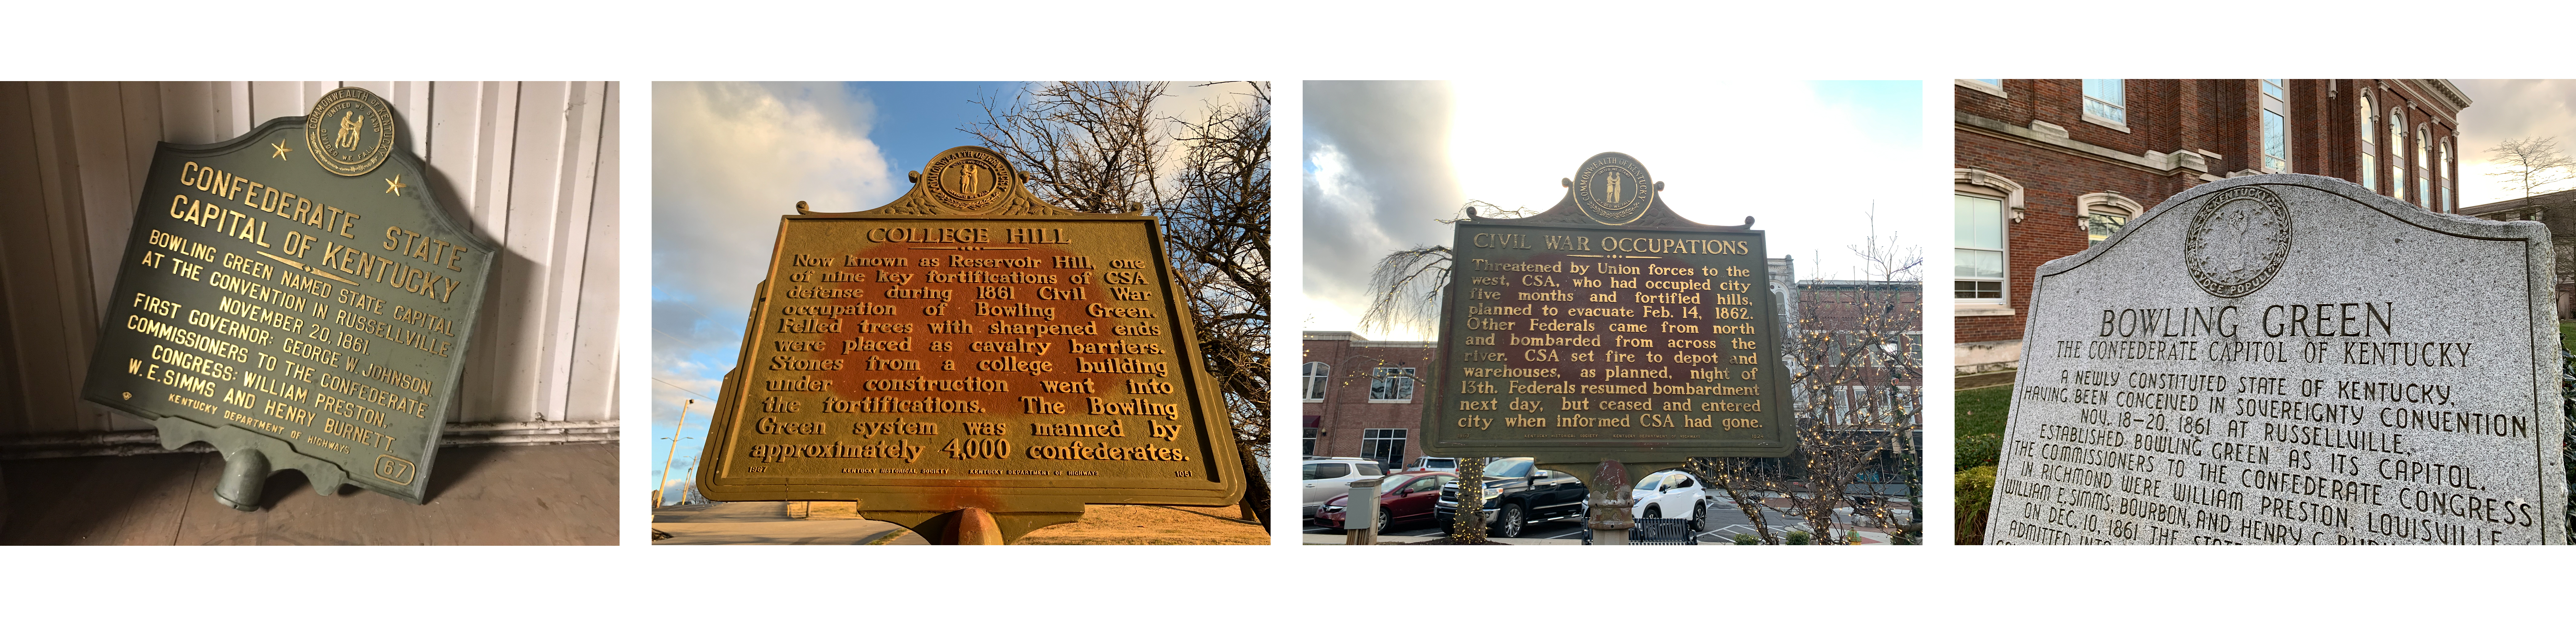 Several Confederate markers in Bowling Green, Kentucky. The leftmost marker was removed from Western Kentucky University's campus in August 2020. (First image courtesy of Kentucky Department of Transportation).